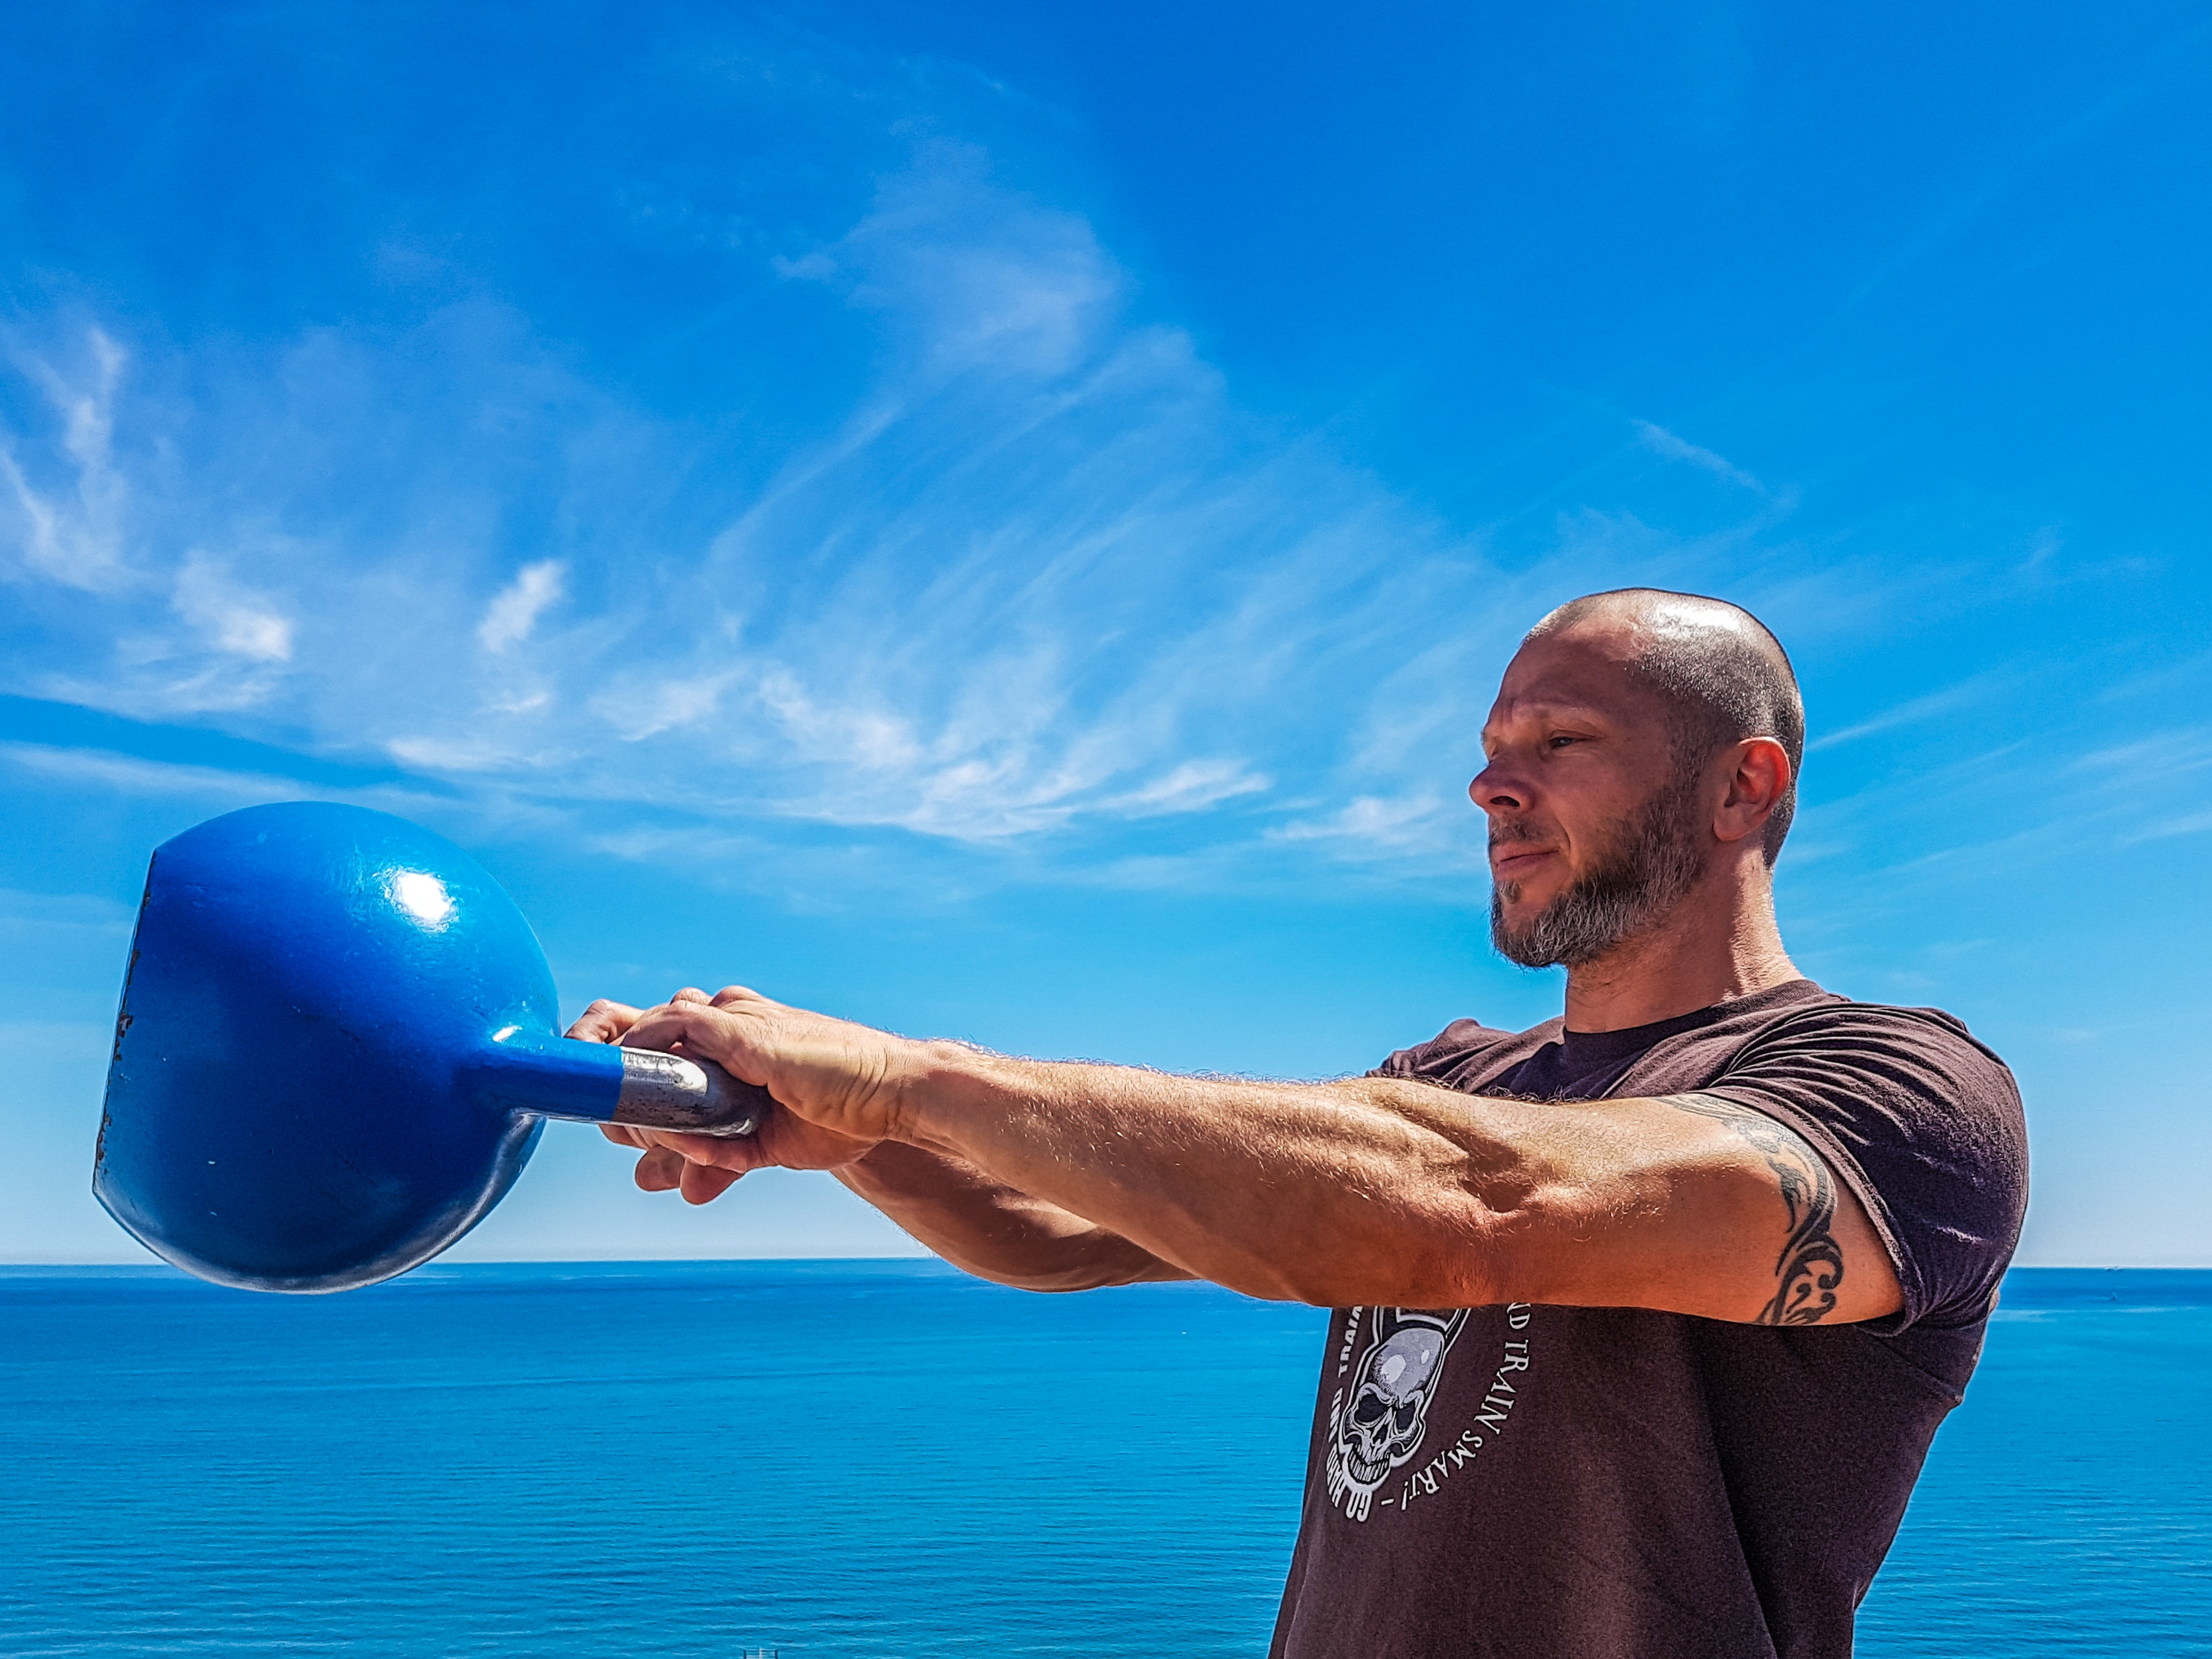 Man Wearing Black Shirt Holding Kettle Bell Near Body of Water, Adult, Ocean, Tattoo, Strong, HQ Photo